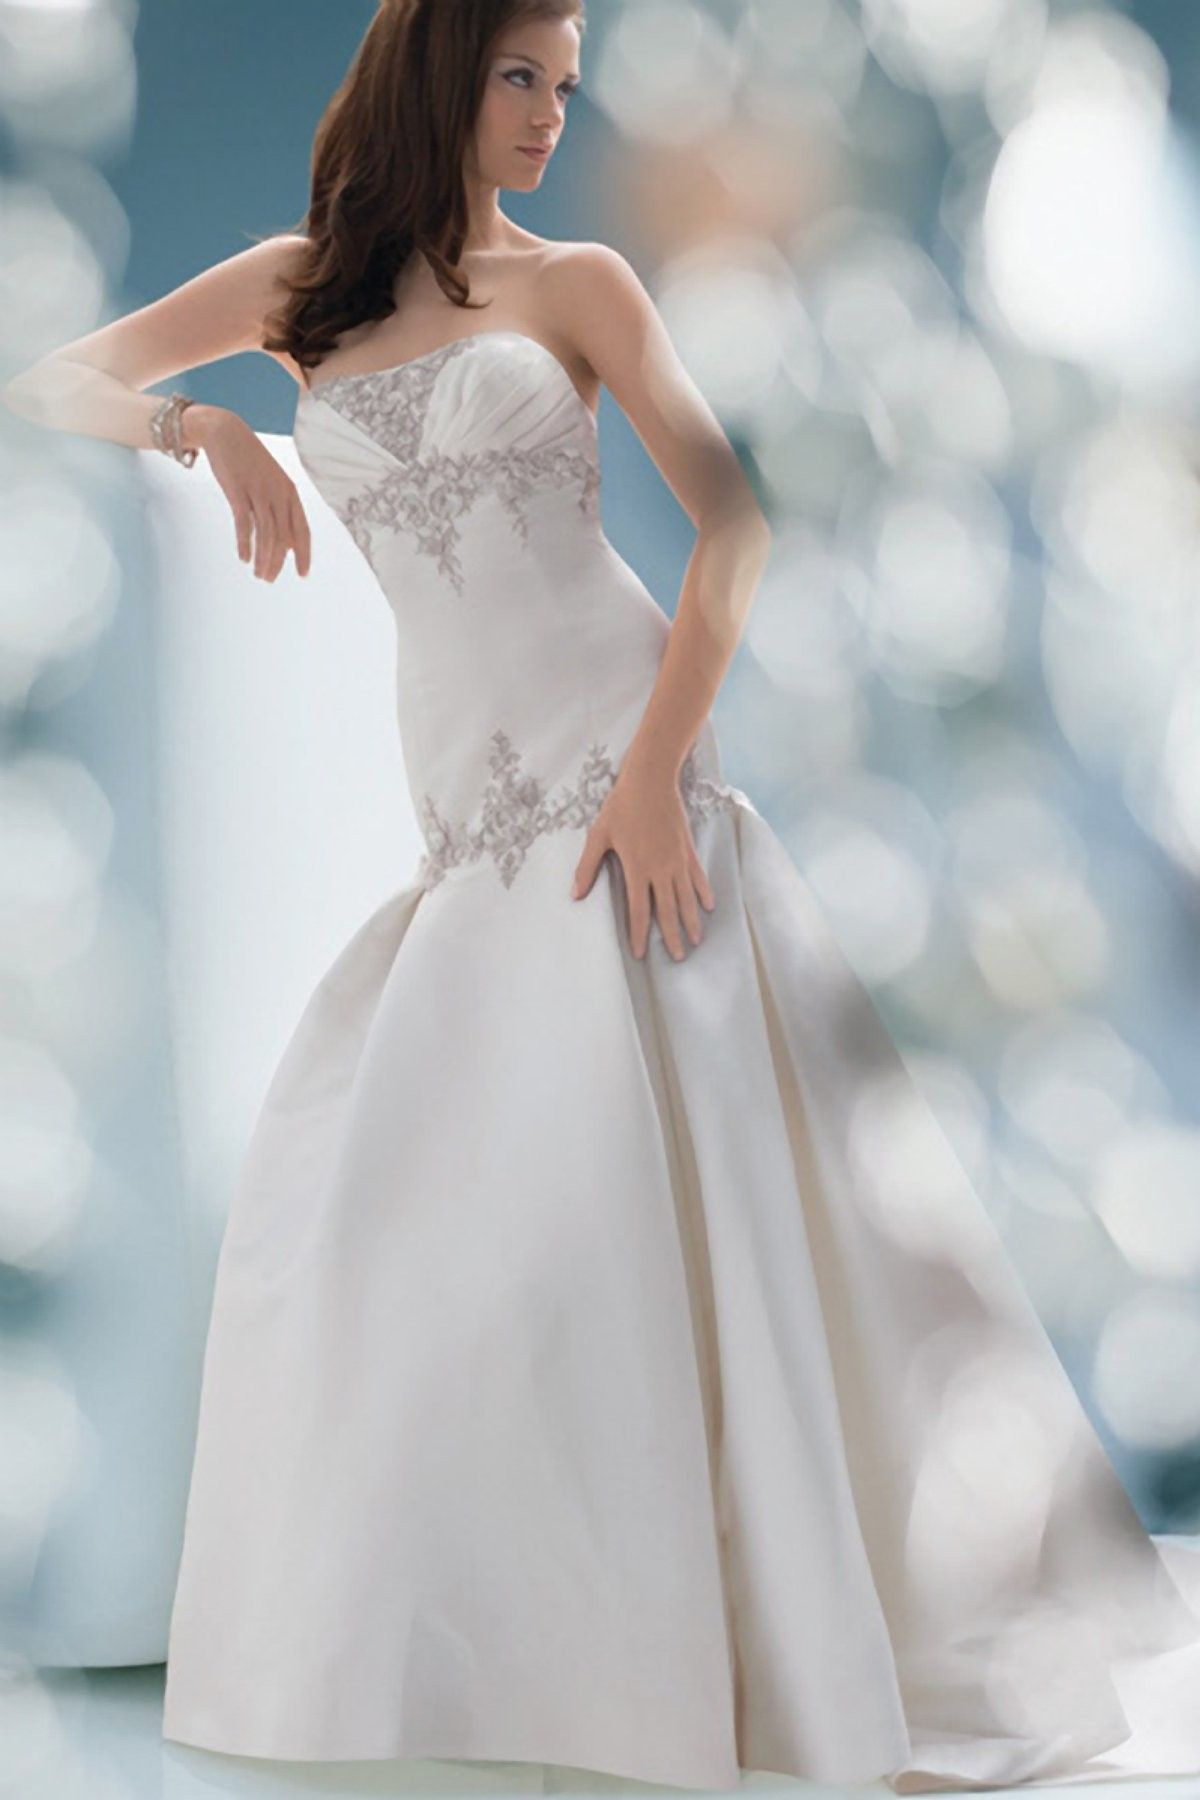 Satin Sculpted Strapless Embroidered Bodice Wedding Dress